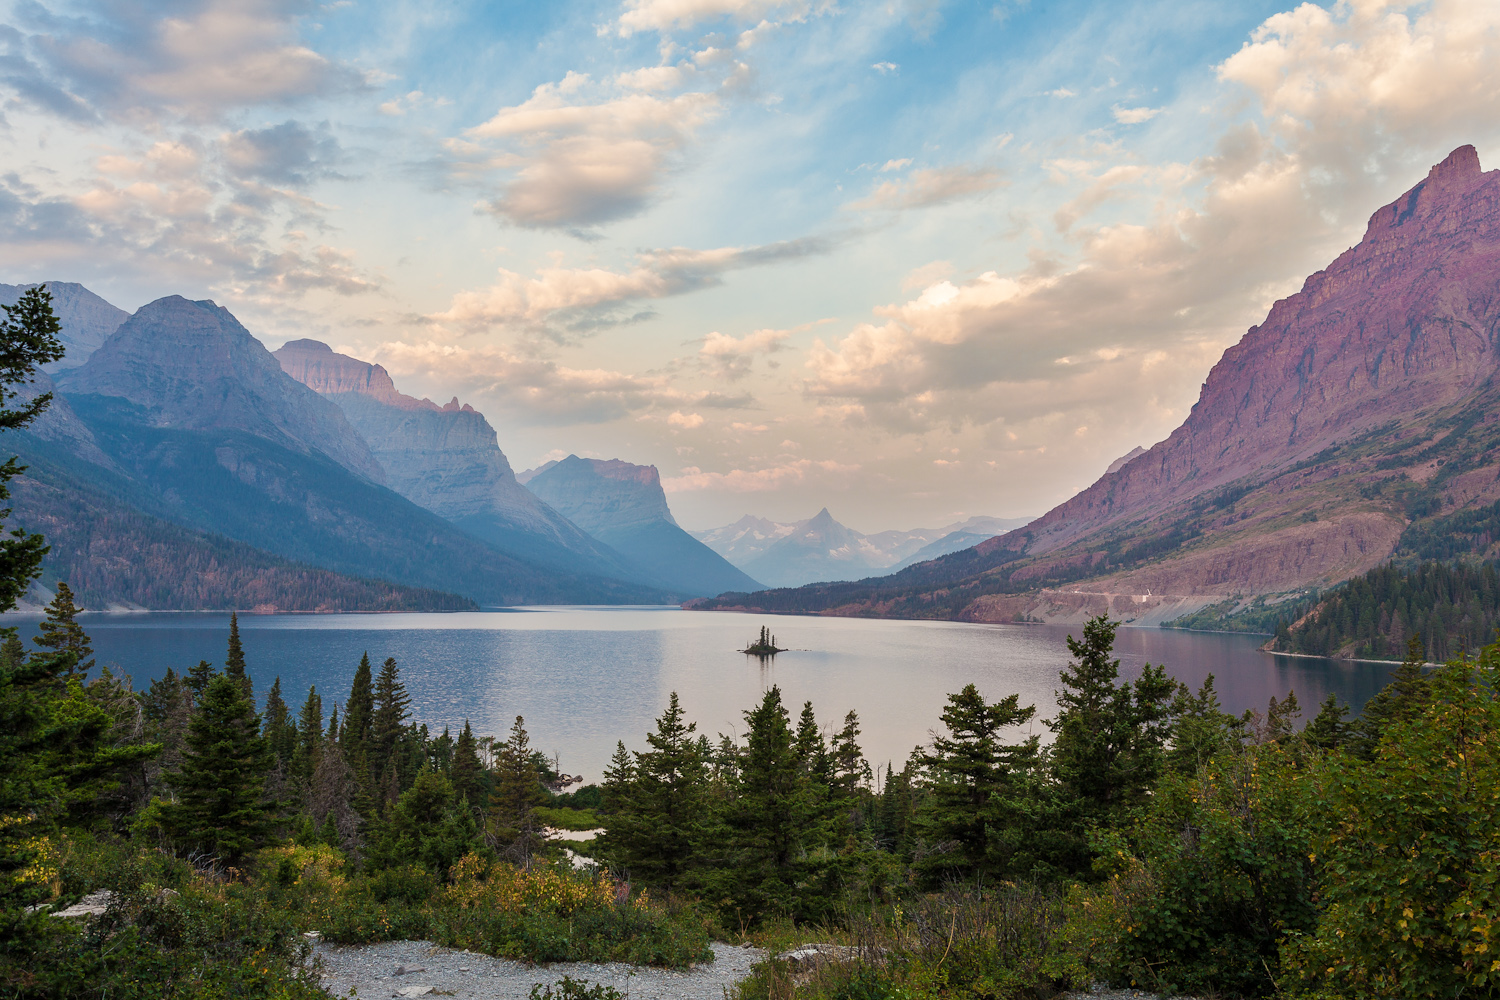 St. Mary's Lake - Glacier National Park, Montana